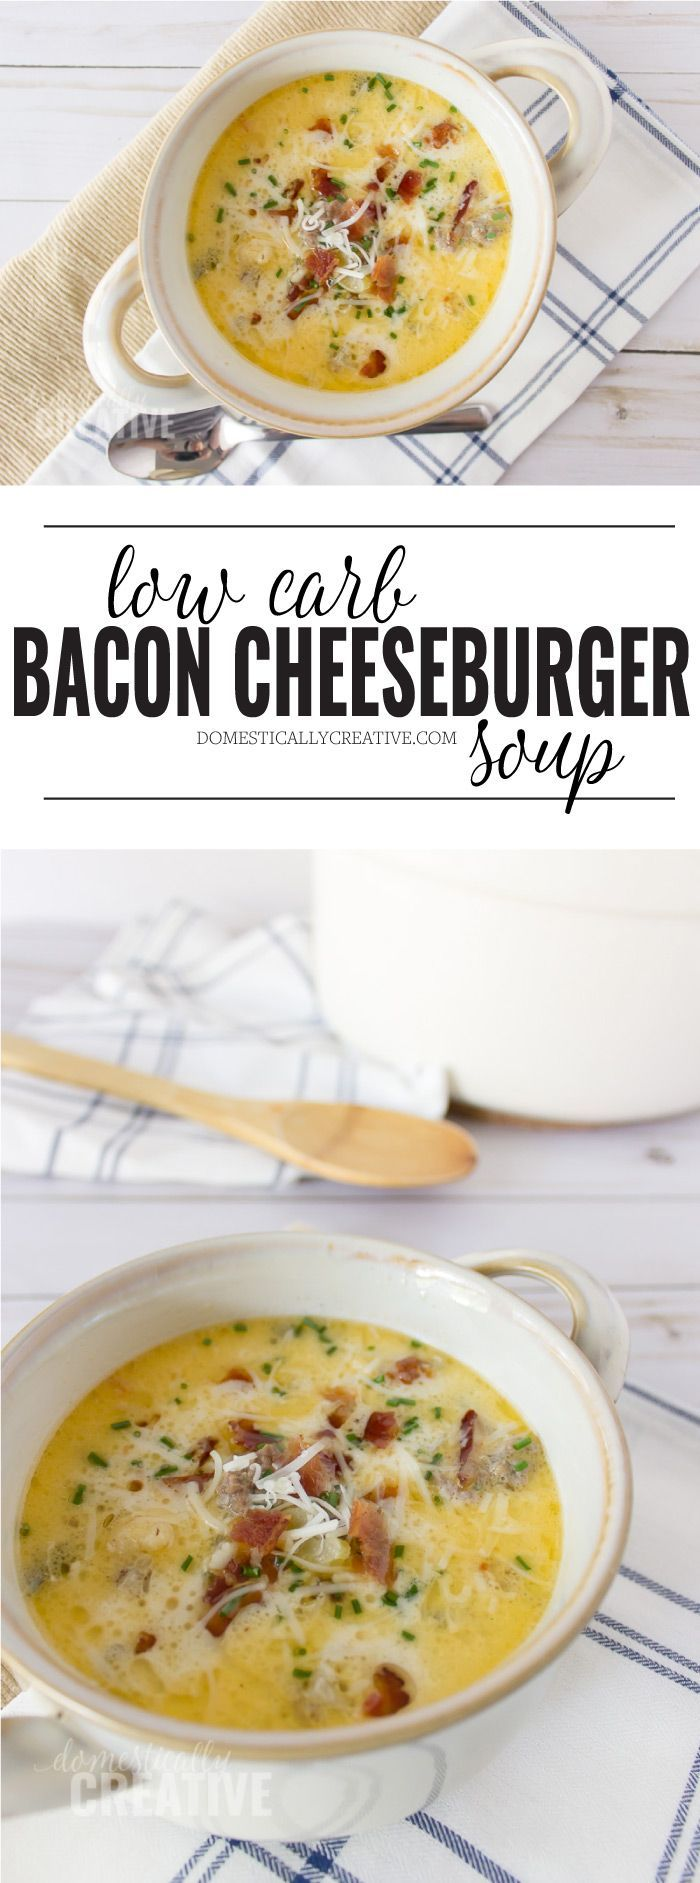 Creamy and hearty Bacon Cheeseburger Soup you can make on the stove top or in the slow cooker. It's packed full of flavor AND a delicious low carb alternative to the traditional soup.